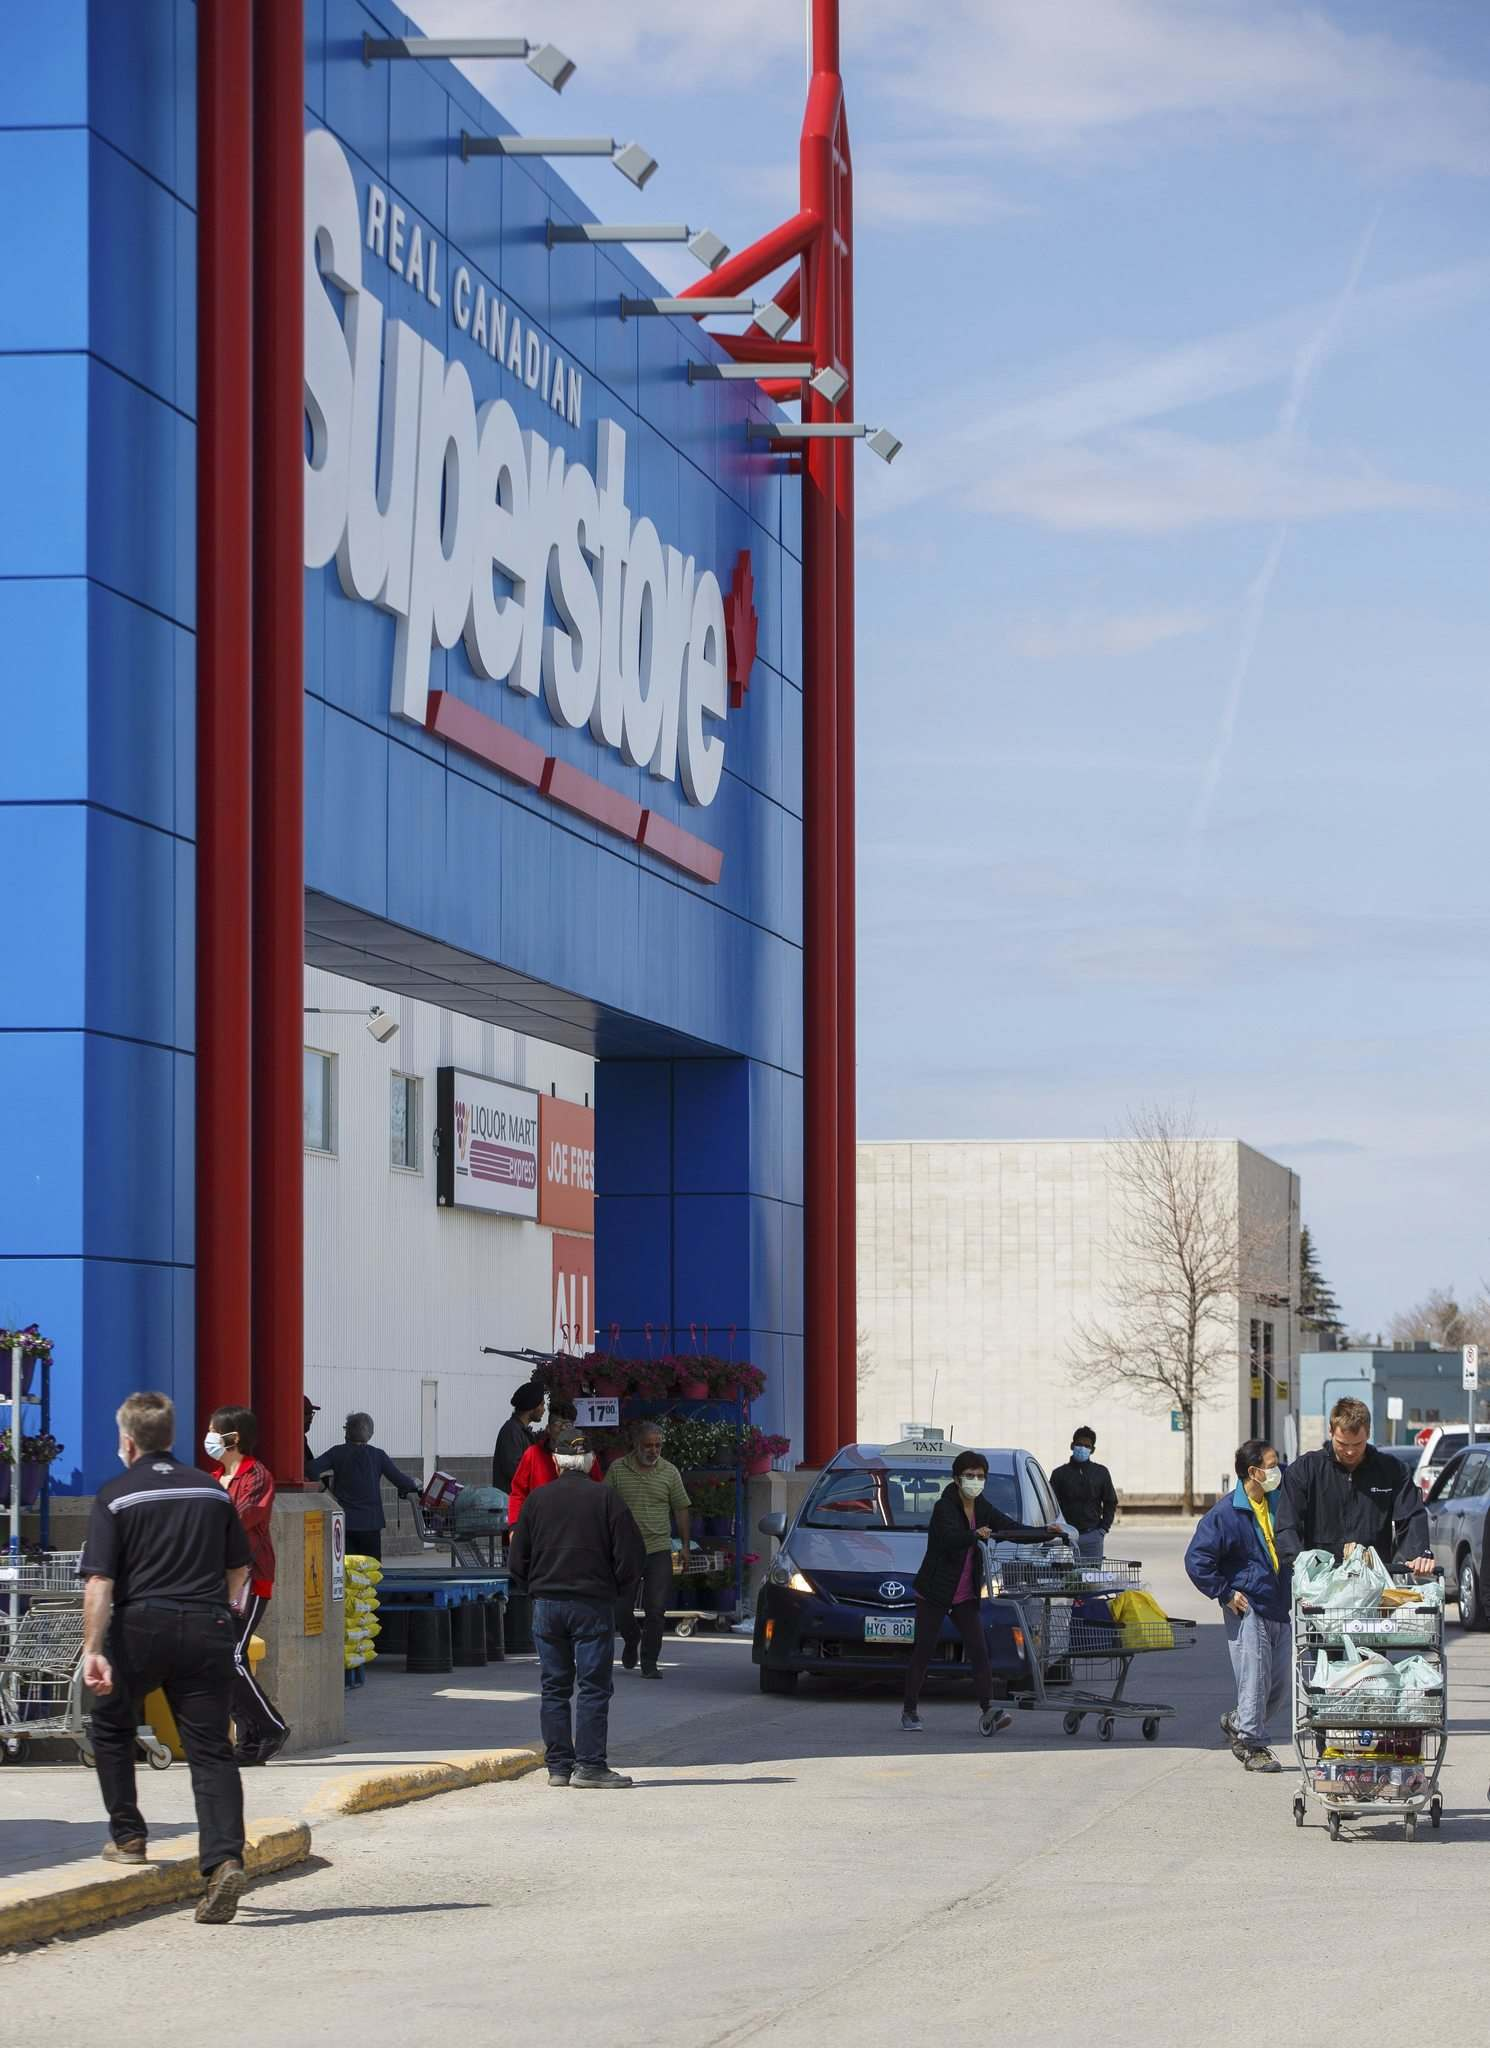 Shoppers outside The Real Canadian Superstore on Bison Drive.